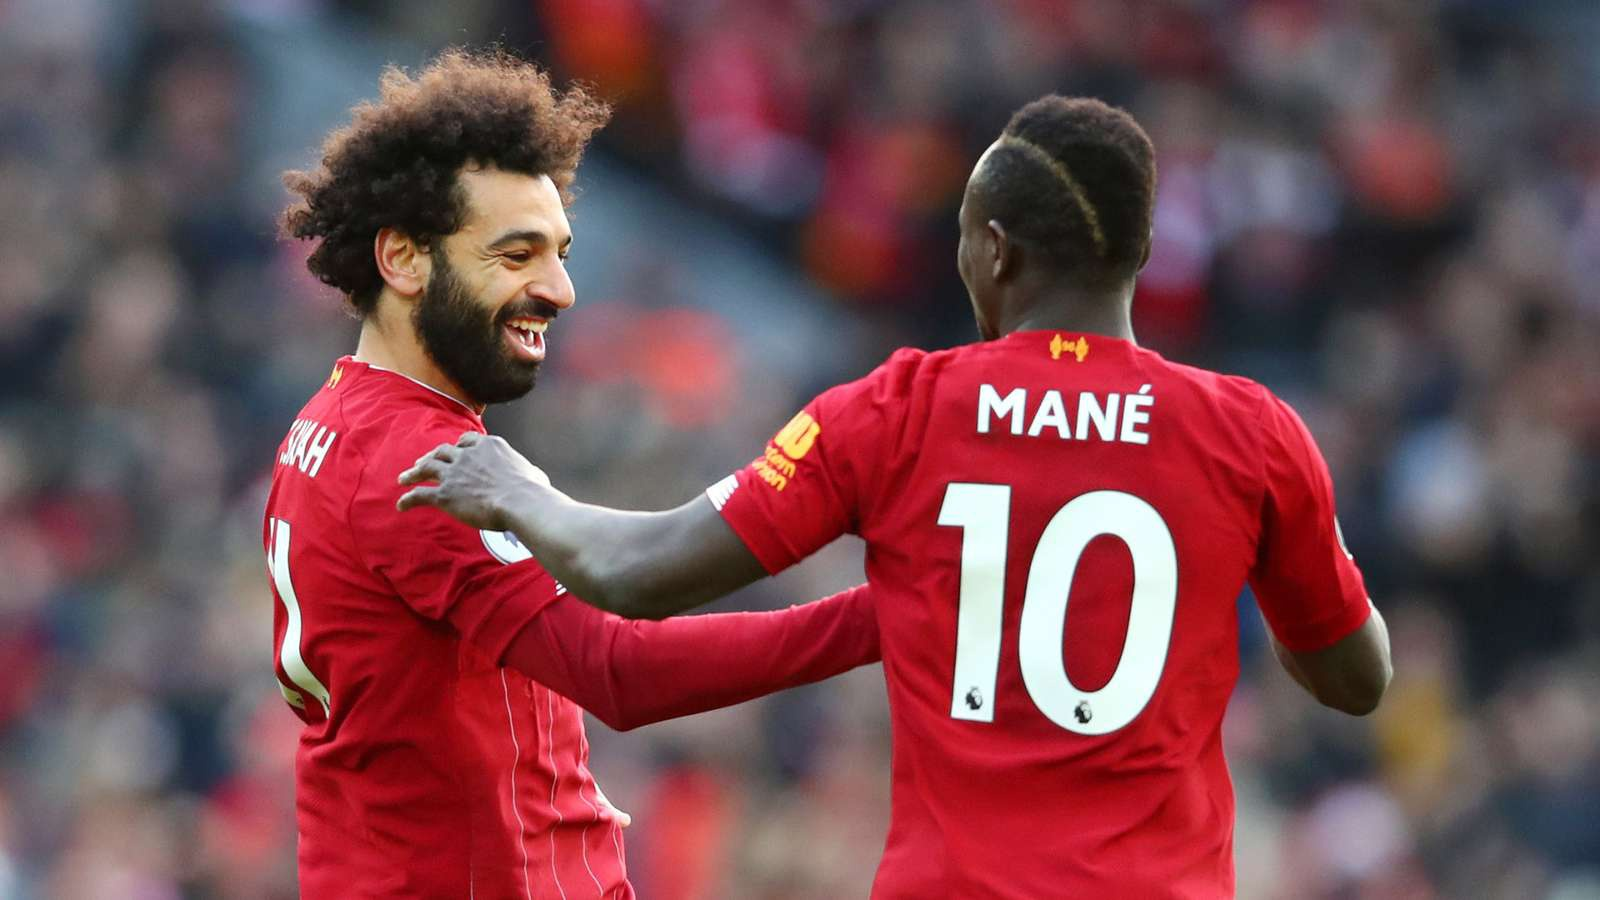 Liverpool star Mohamed Salah questioned over one thing as Lionel Messi comparison made - Bóng Đá